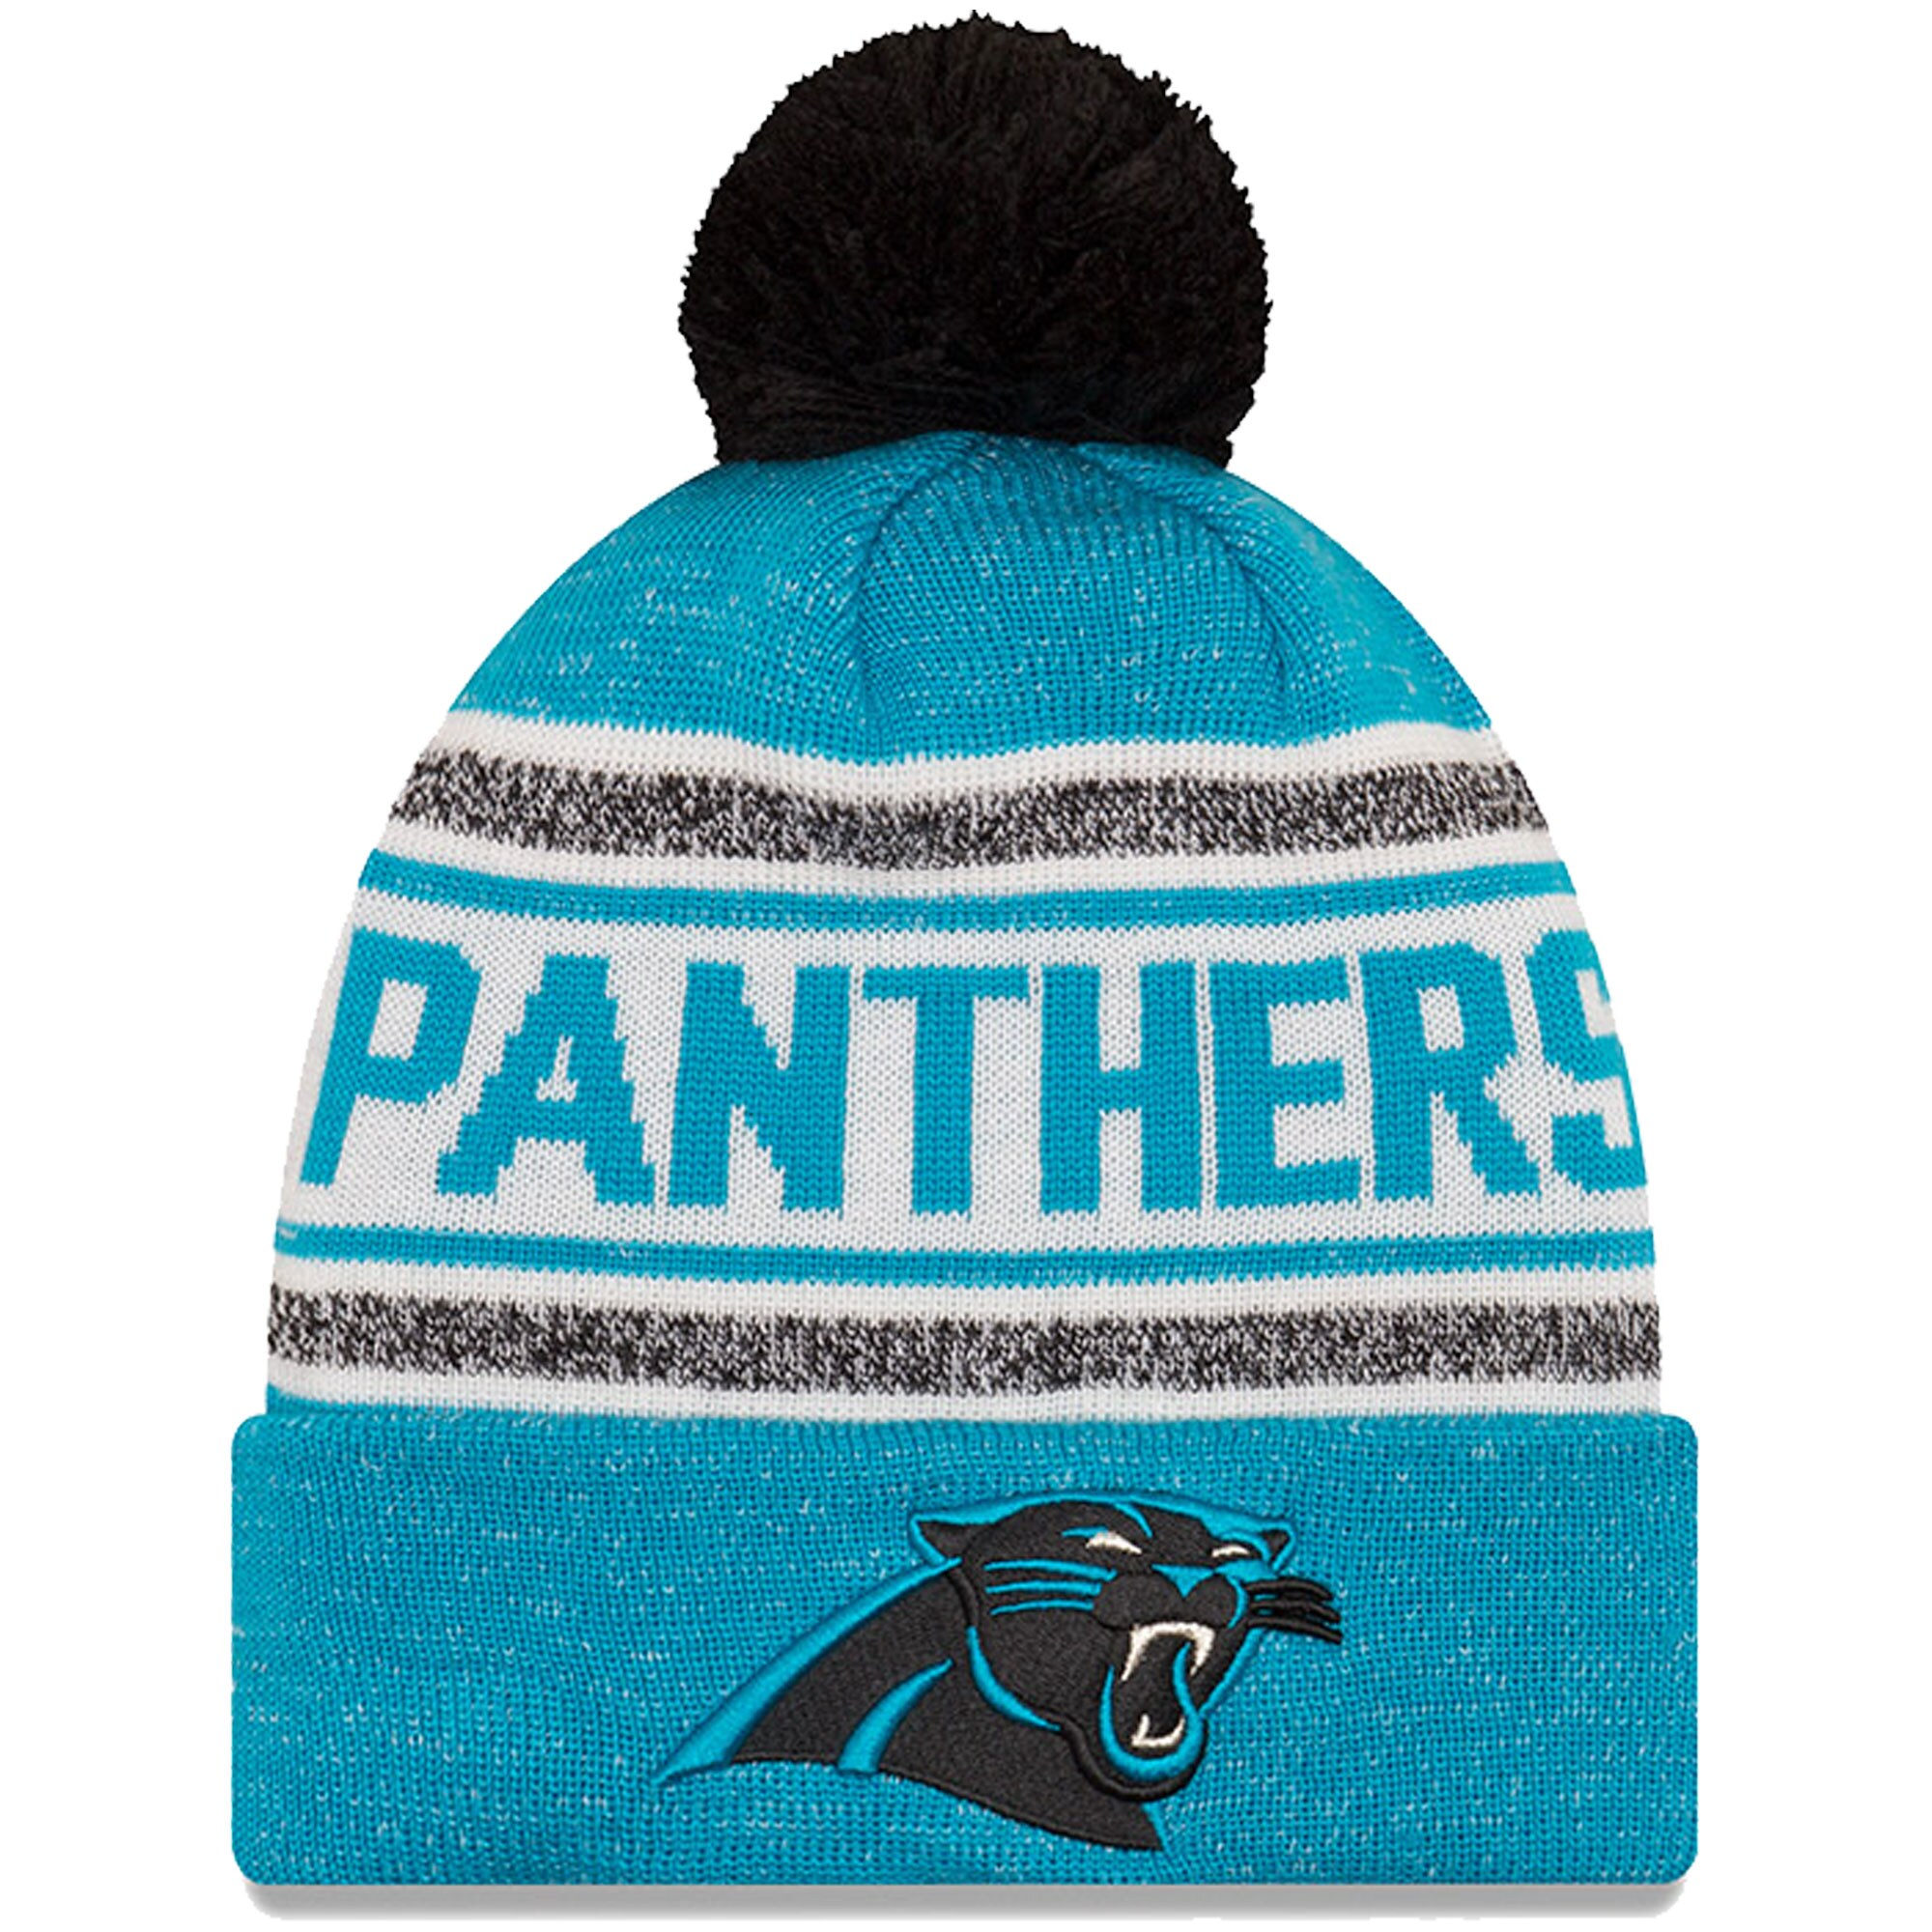 Carolina Panthers New Era Toasty Cover Cuffed Knit Hat with Pom - Blue